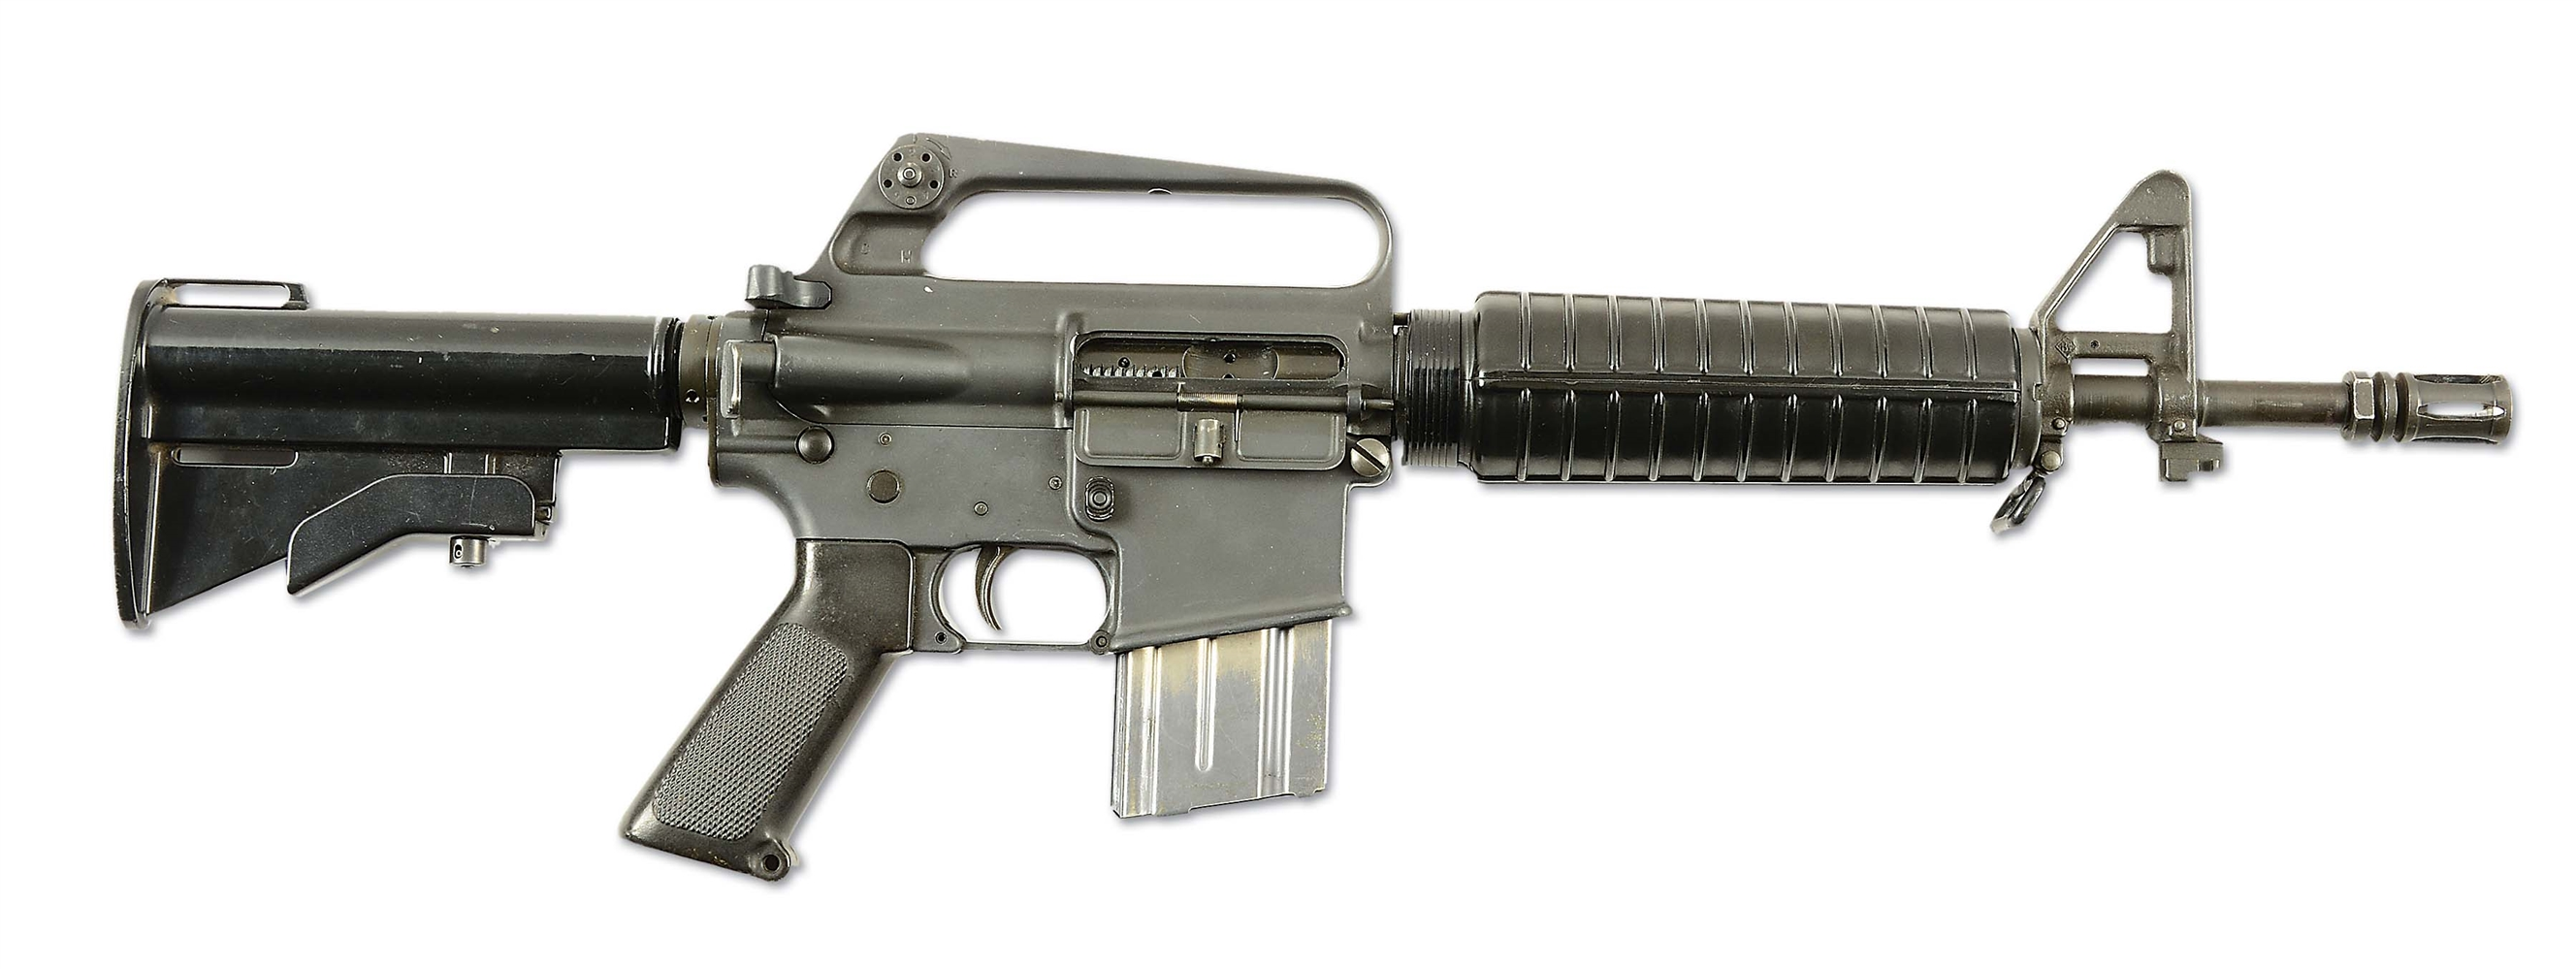 (N) H.T. ARMORY REGISTERED COLT AR-15 A2 SPORTER II (M-16) MACHINE GUN (FULLY TRANSFERABLE).